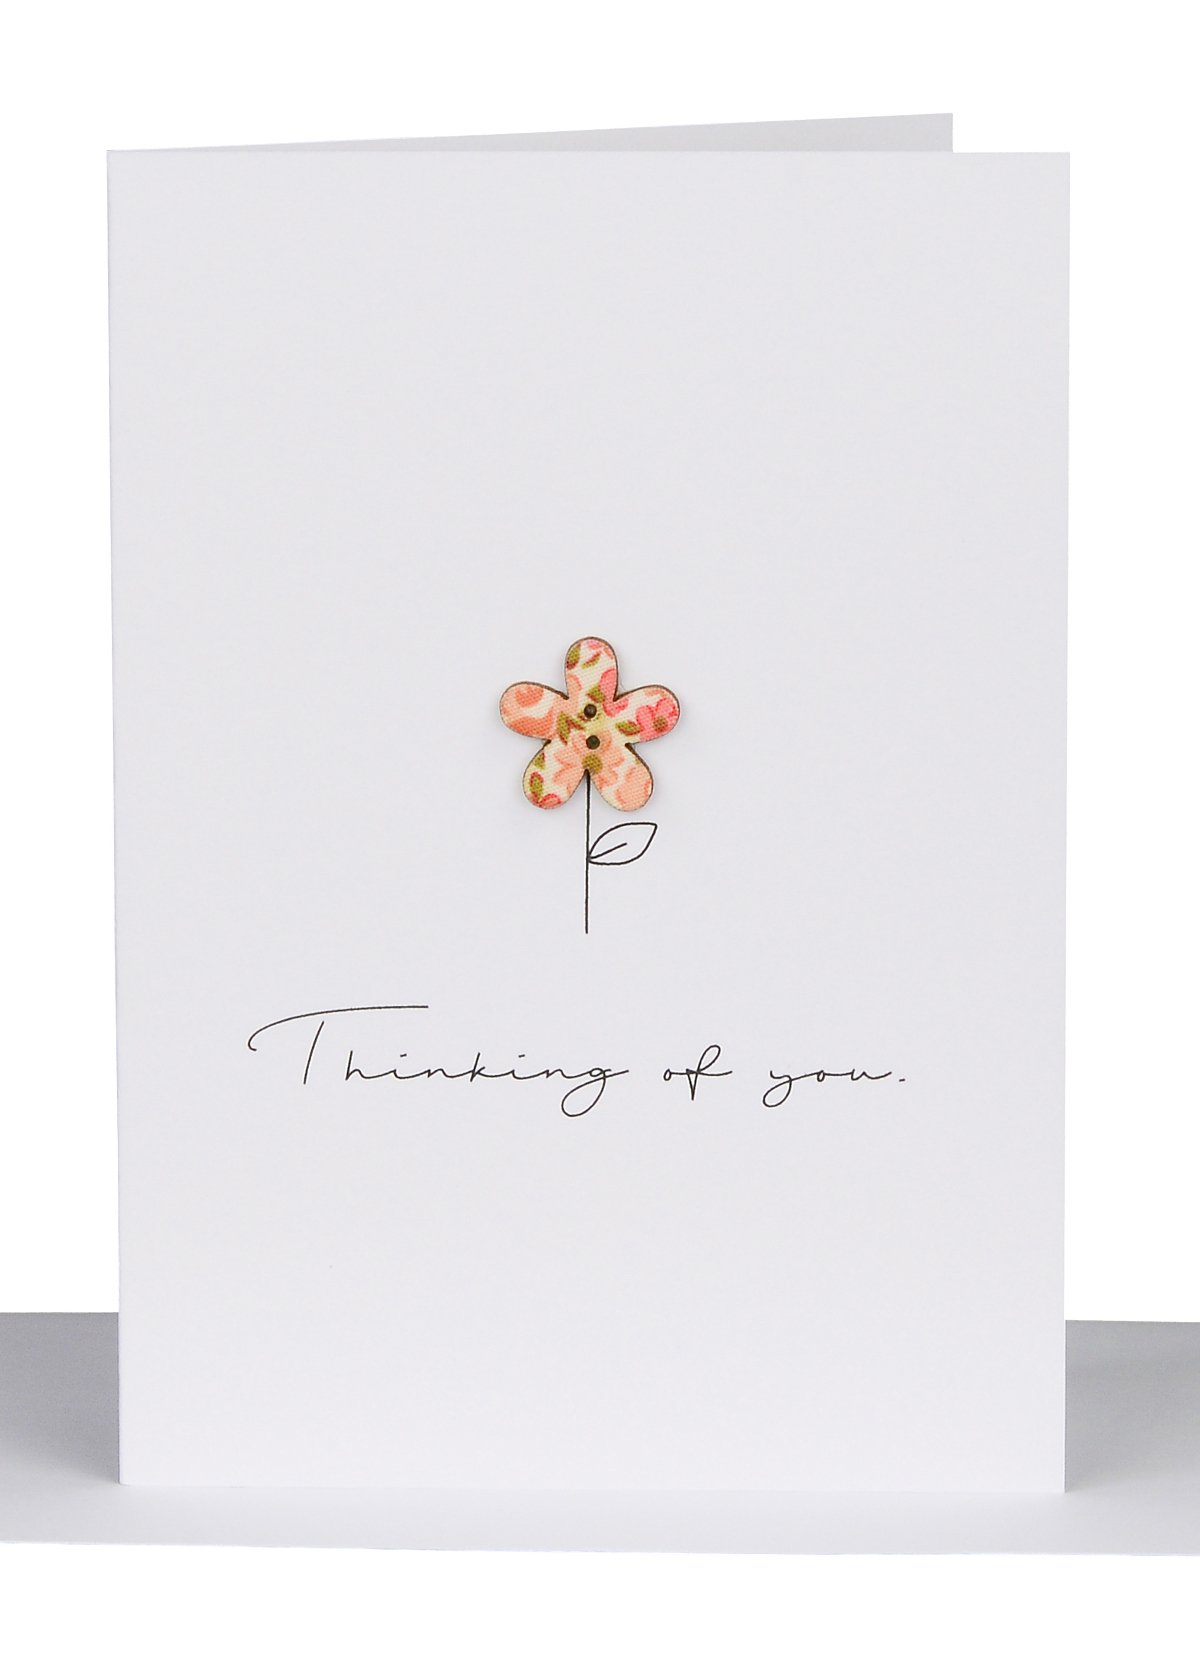 Wholesale sympathy thinking of you cards australian made lils wholesale sympathy cards m4hsunfo